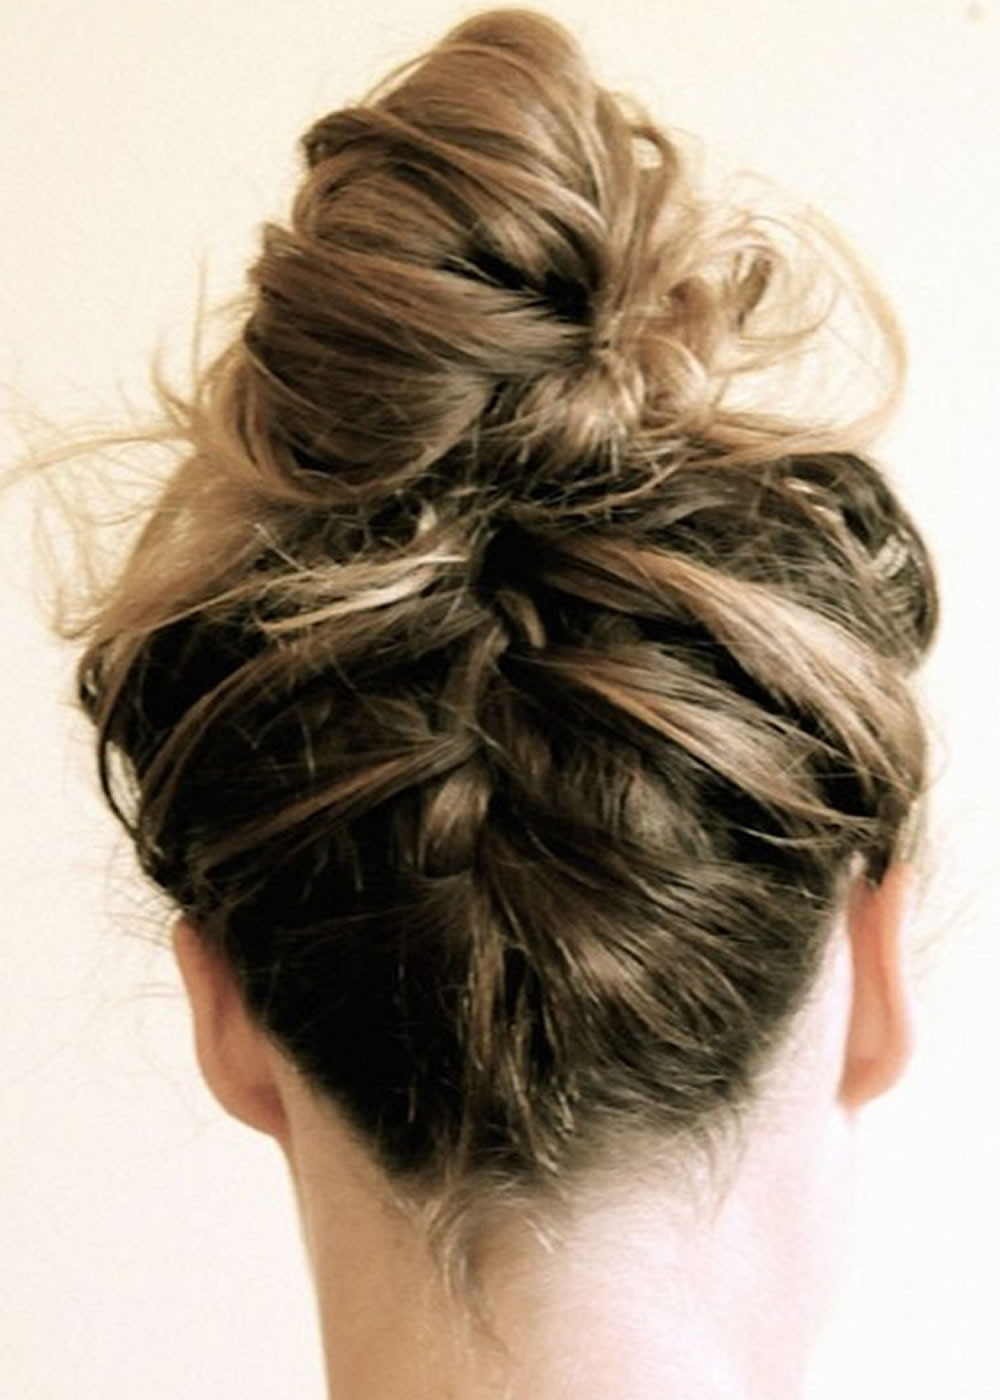 Best ideas about New Braid Hairstyles 2019 . Save or Pin 25 Very Stylish Soft Braided Hairstyles ideas 2018 2019 Now.